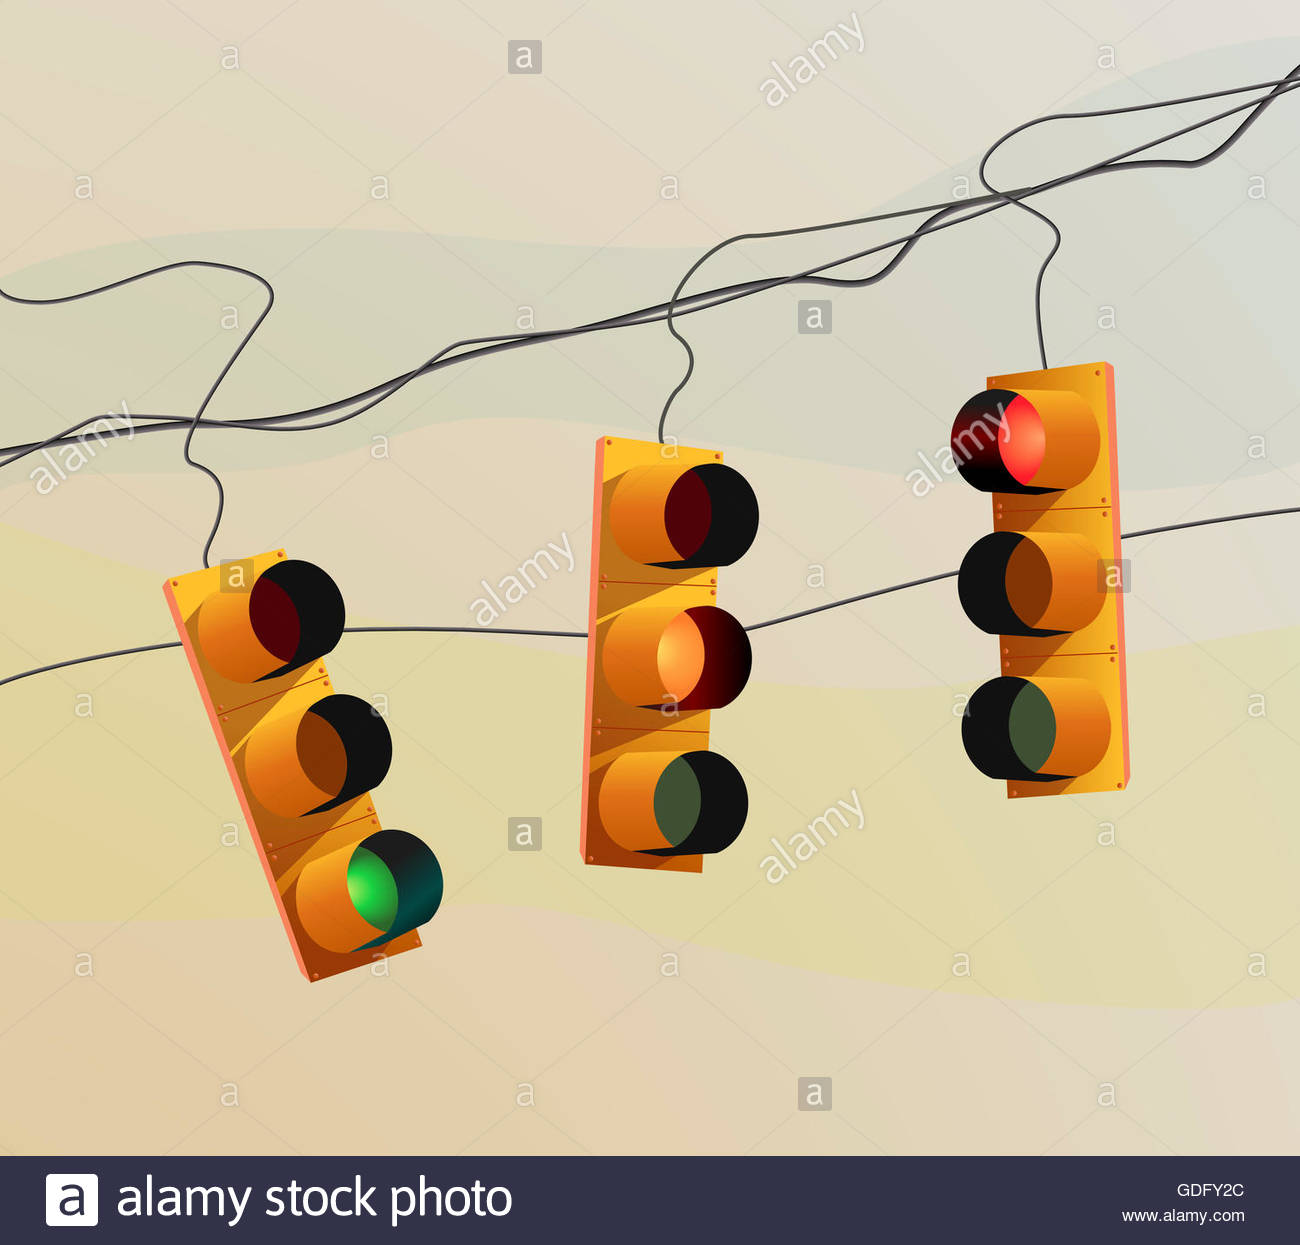 1300x1245 Illustration Or Drawing Of Some Traffic Lights Hanging From Some